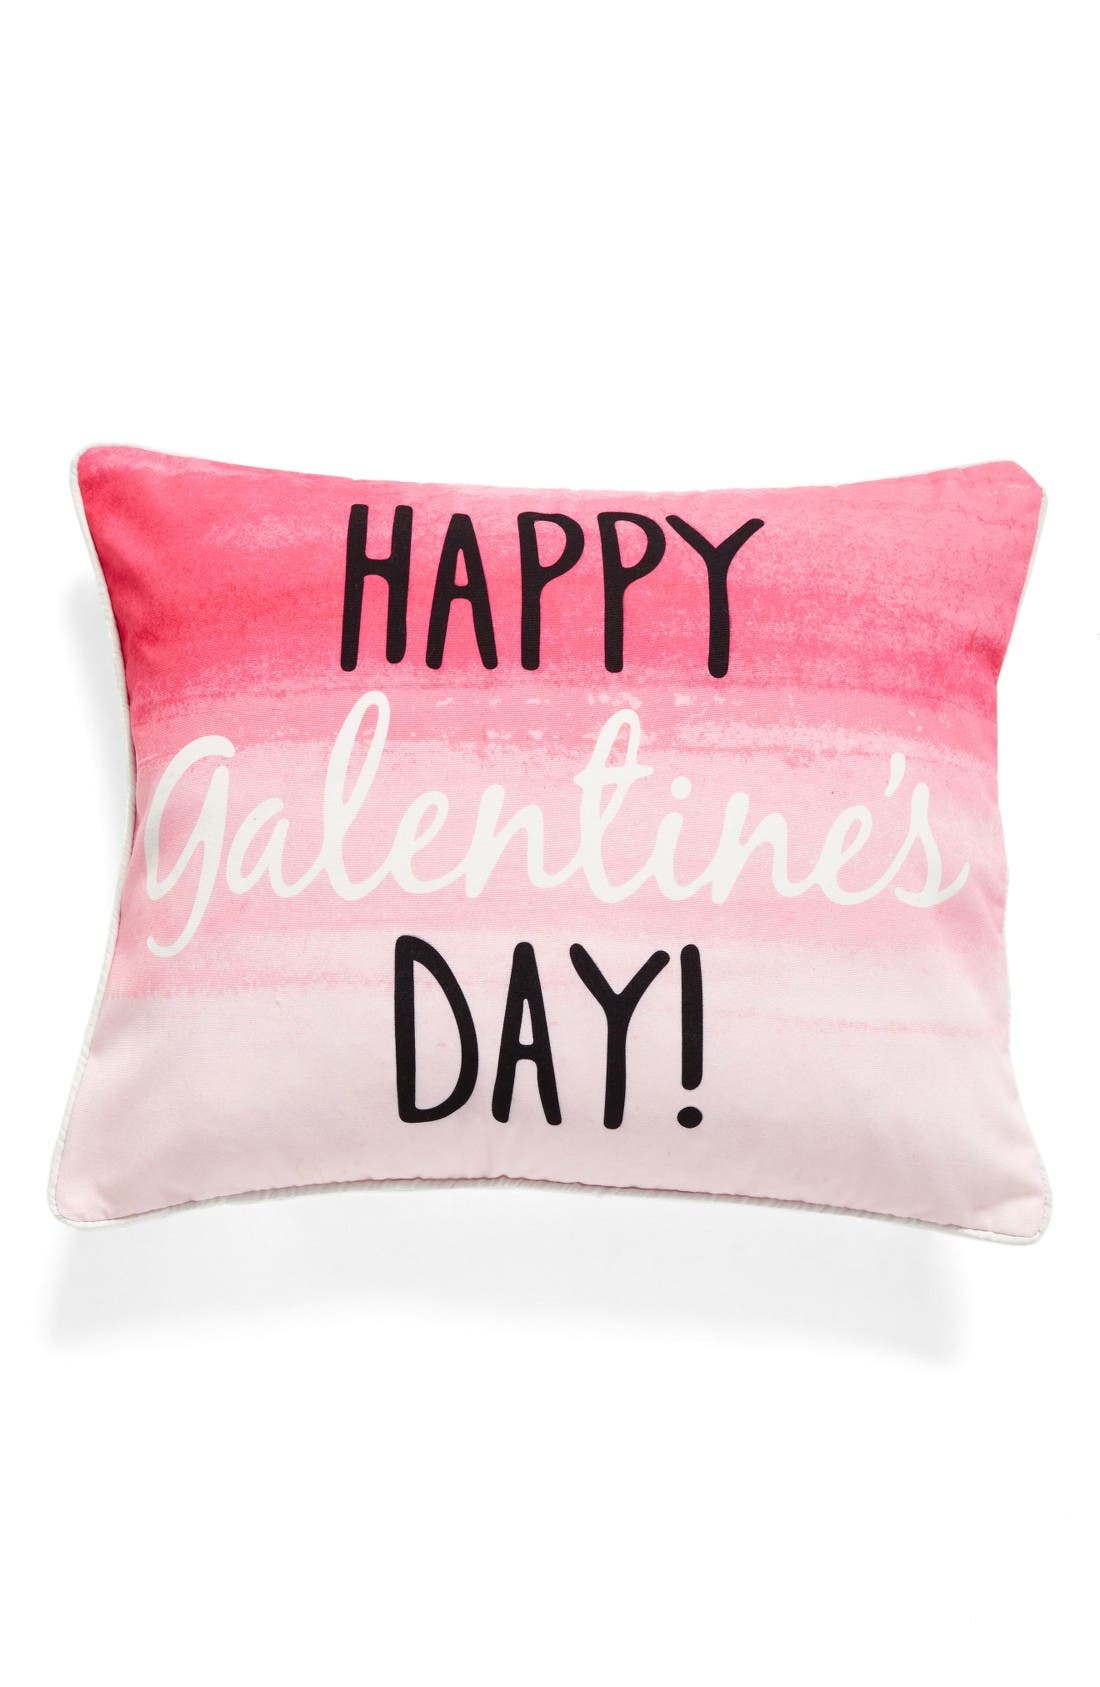 Alternate Image 1 Selected - Levtex Happy Galentine's Day Pillow